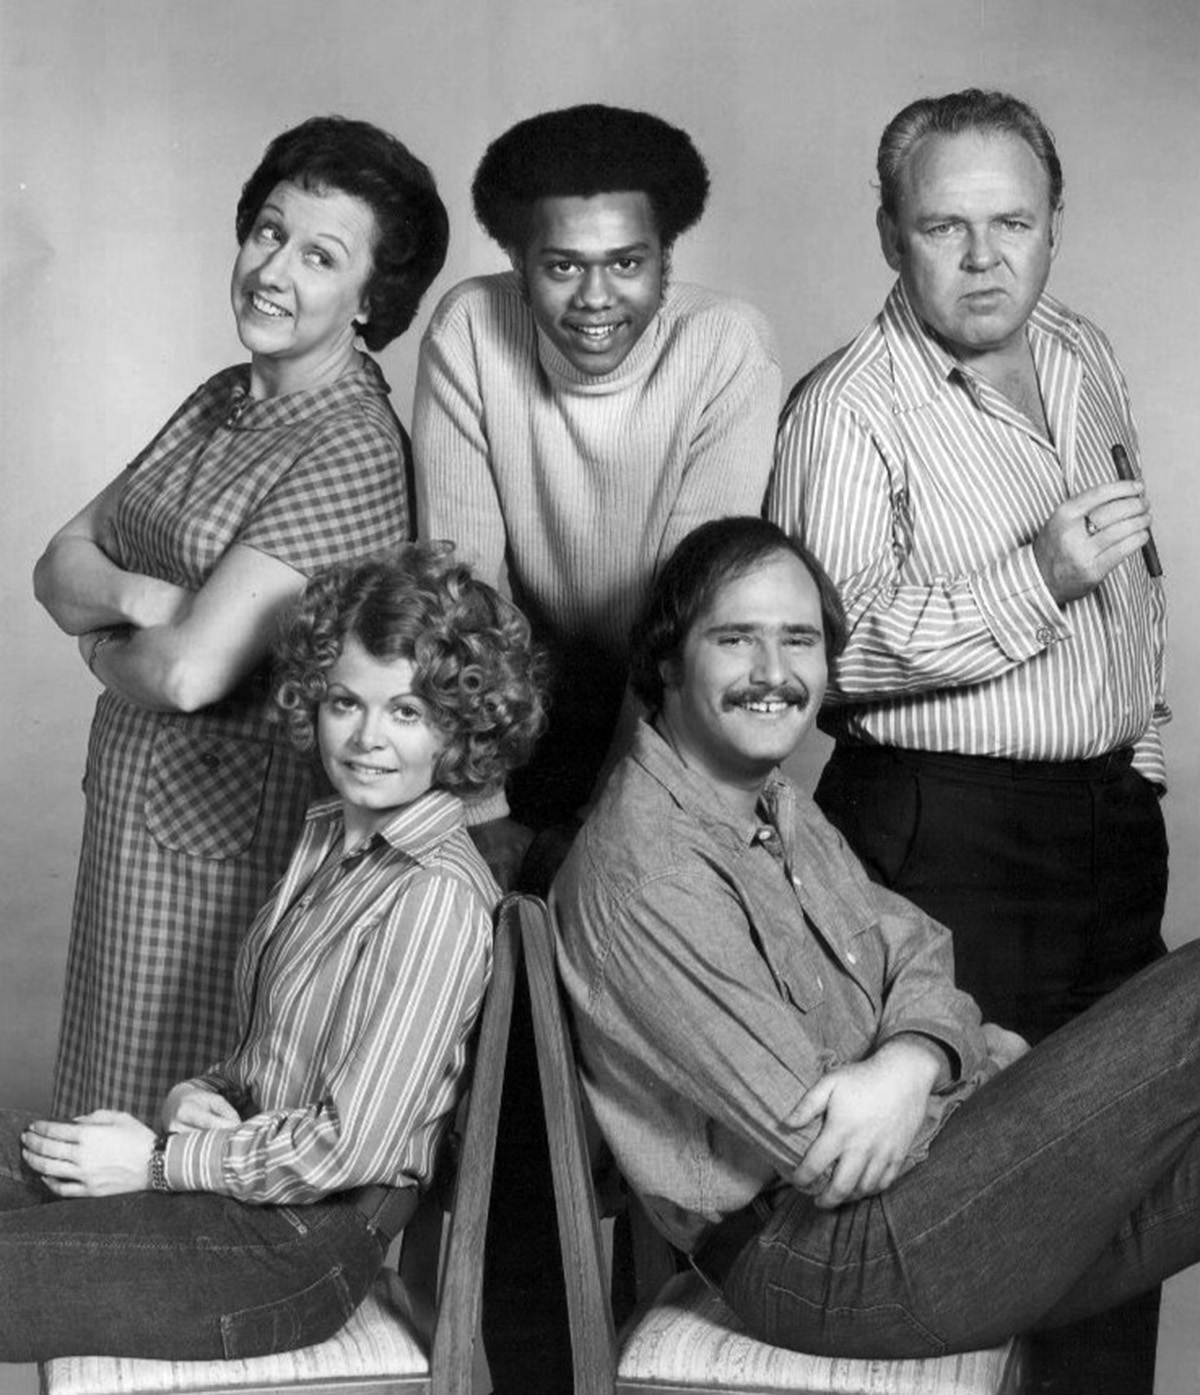 CBS Television, All in the Family Cast 1973, Wikimedia, http://commons.wikimedia.org/wiki/File:All_In_the_Family_cast_1973.JPG.